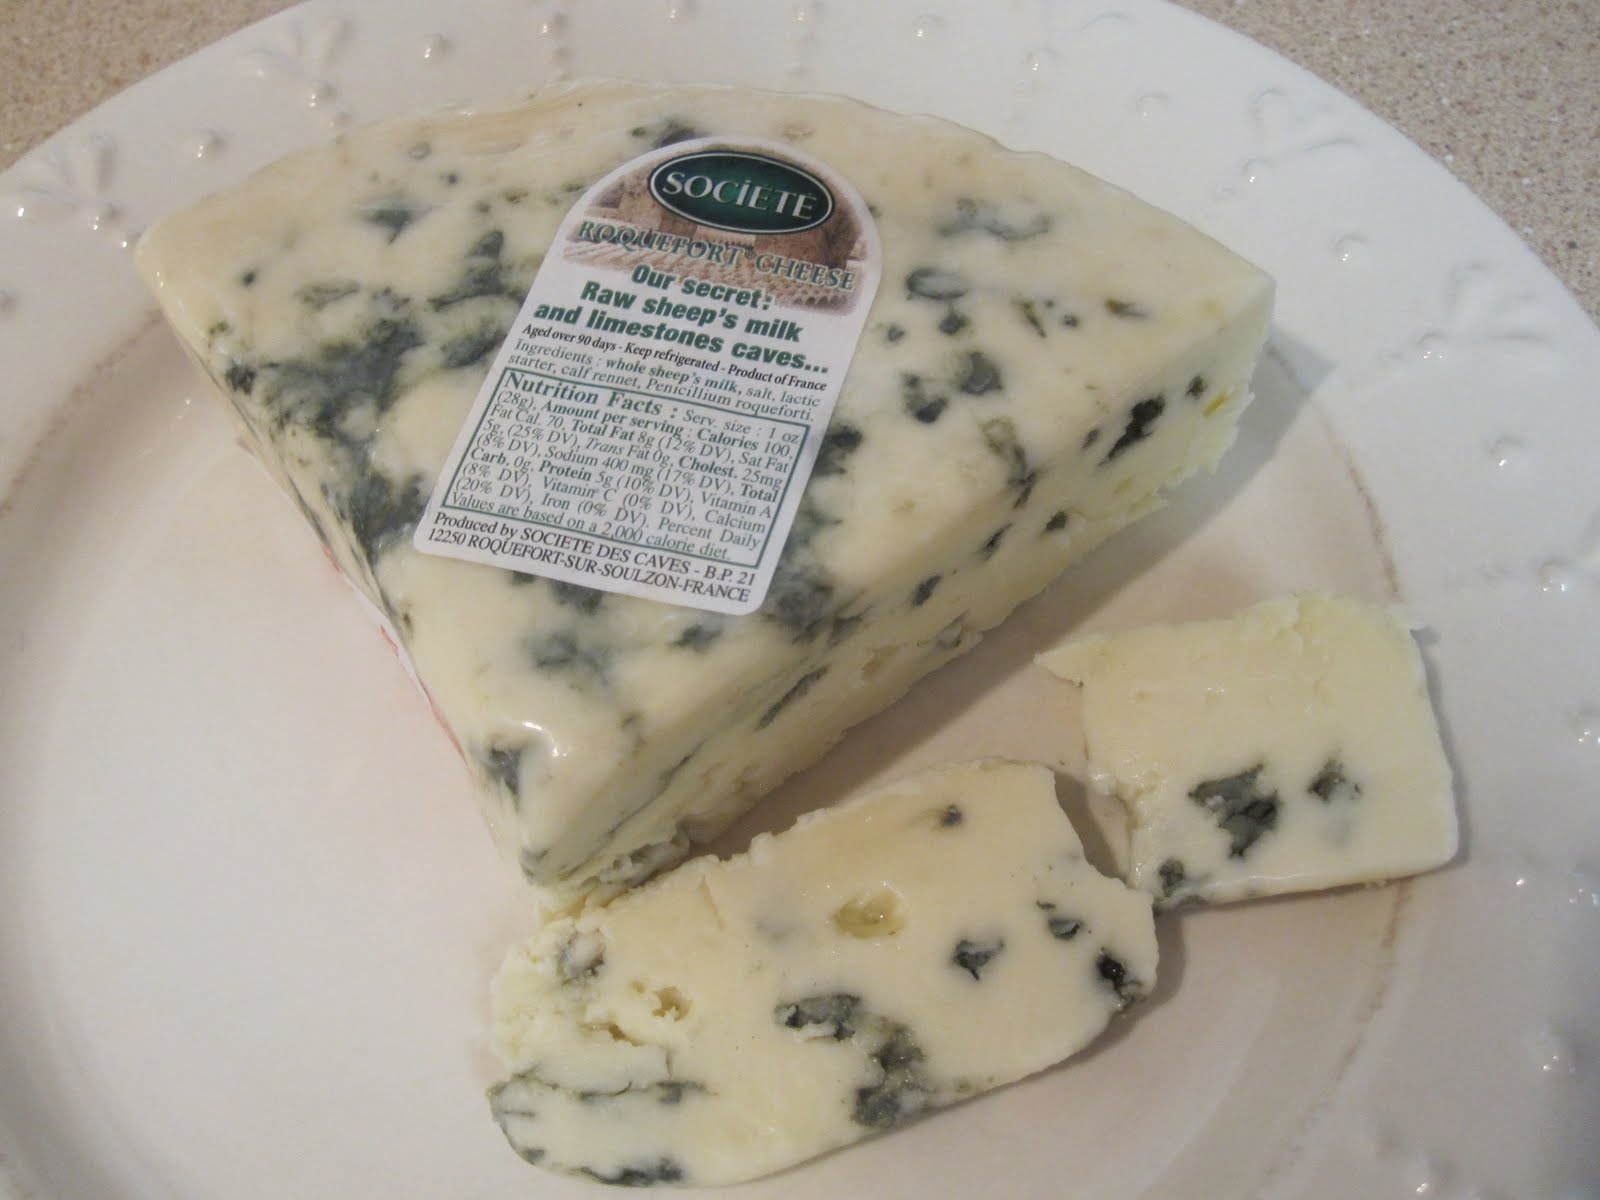 more than any other blue cheese ive tried it is moldy throughout